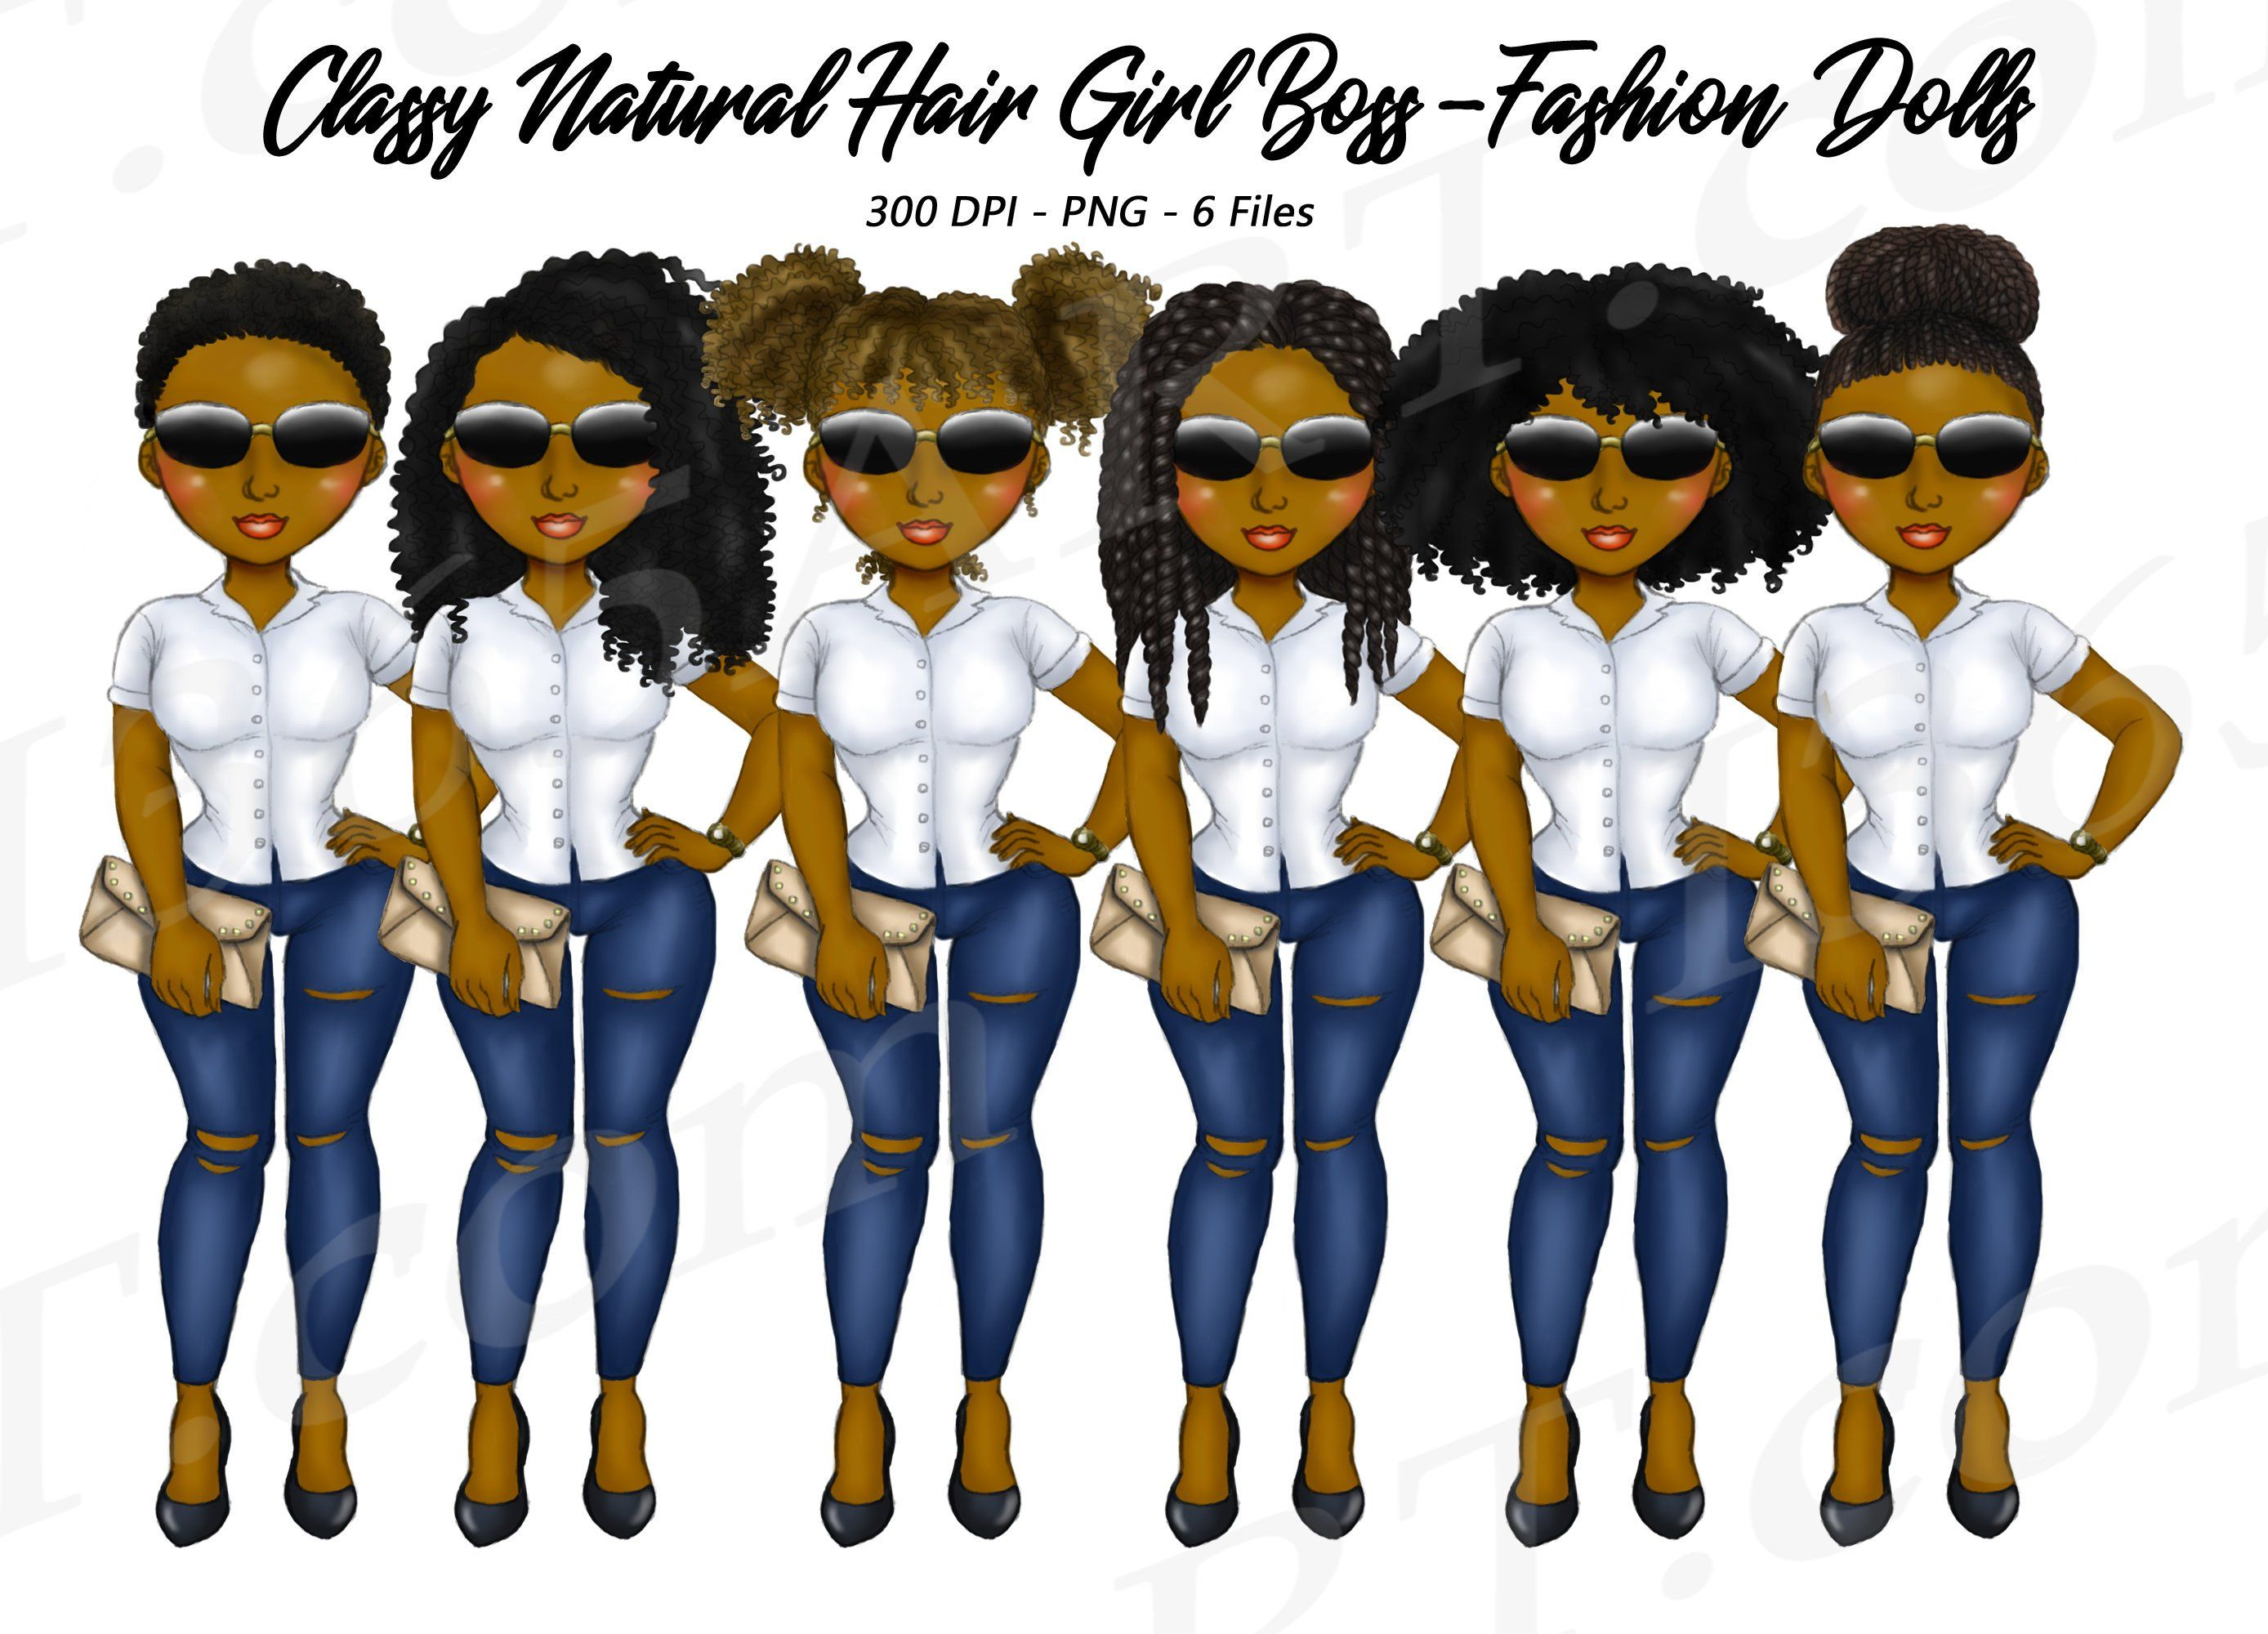 Street Fashion Clipart, Natural Hair, Black Girls, City.